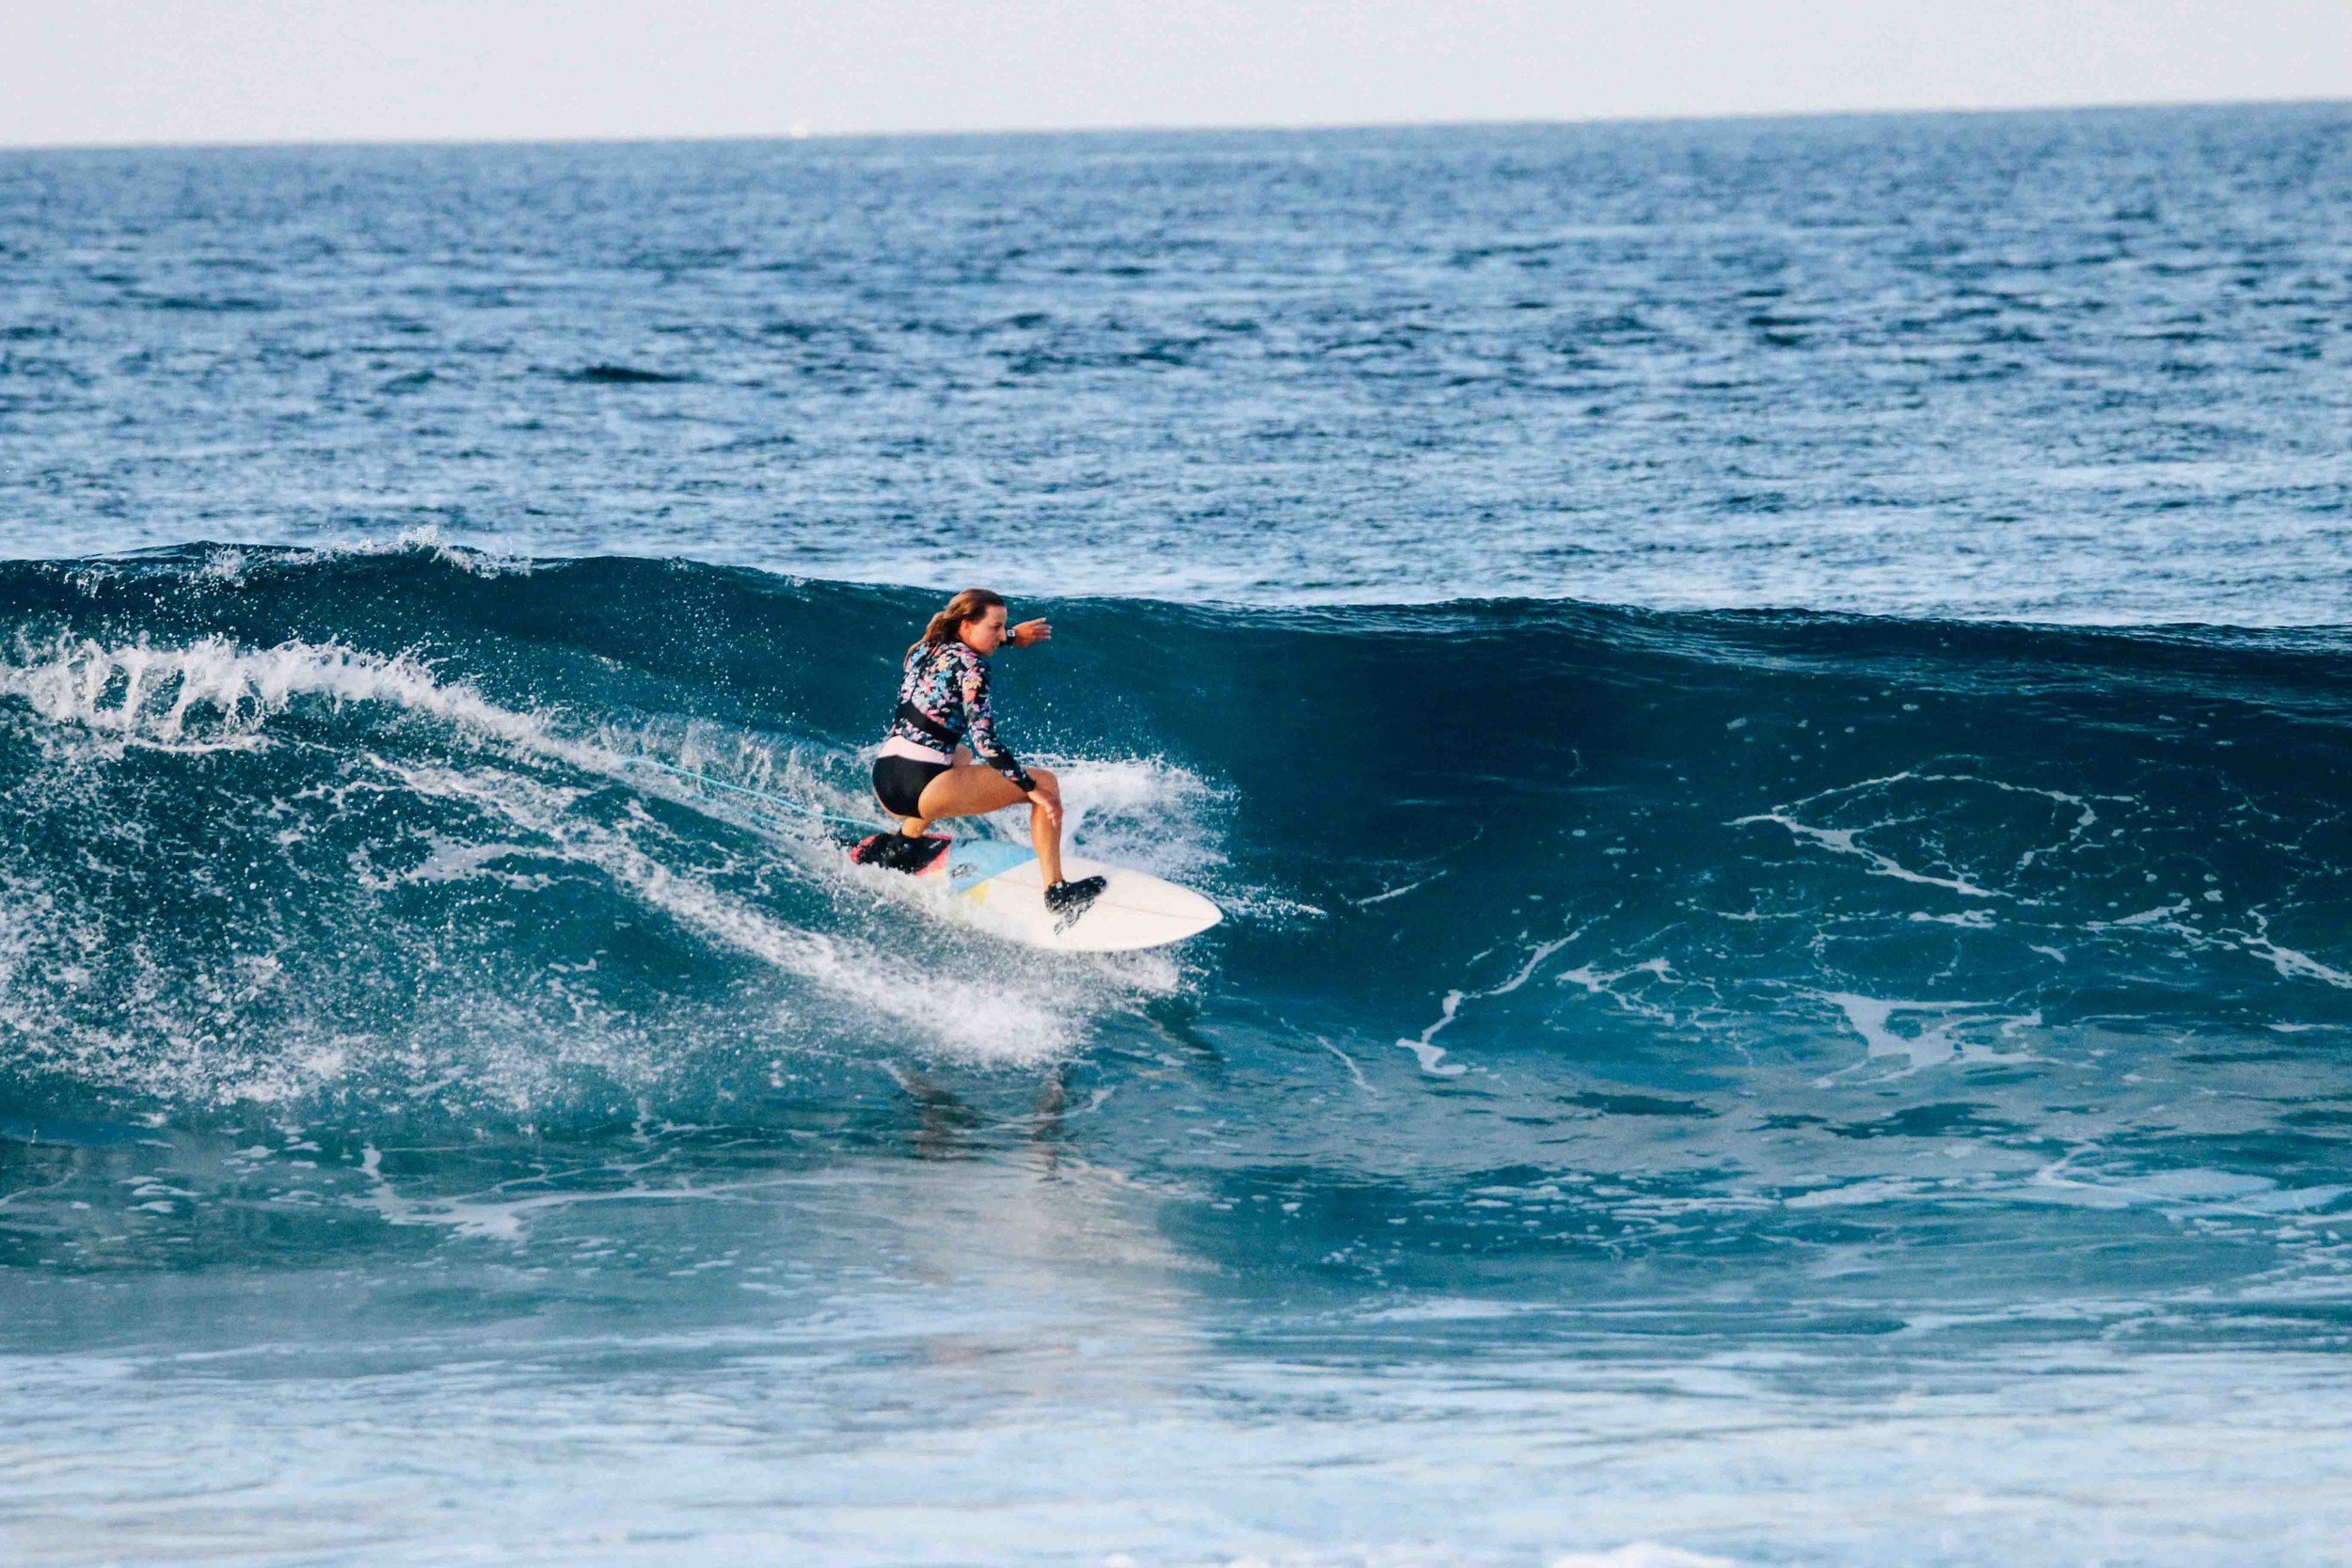 Zoe on a wave in the Maldives.